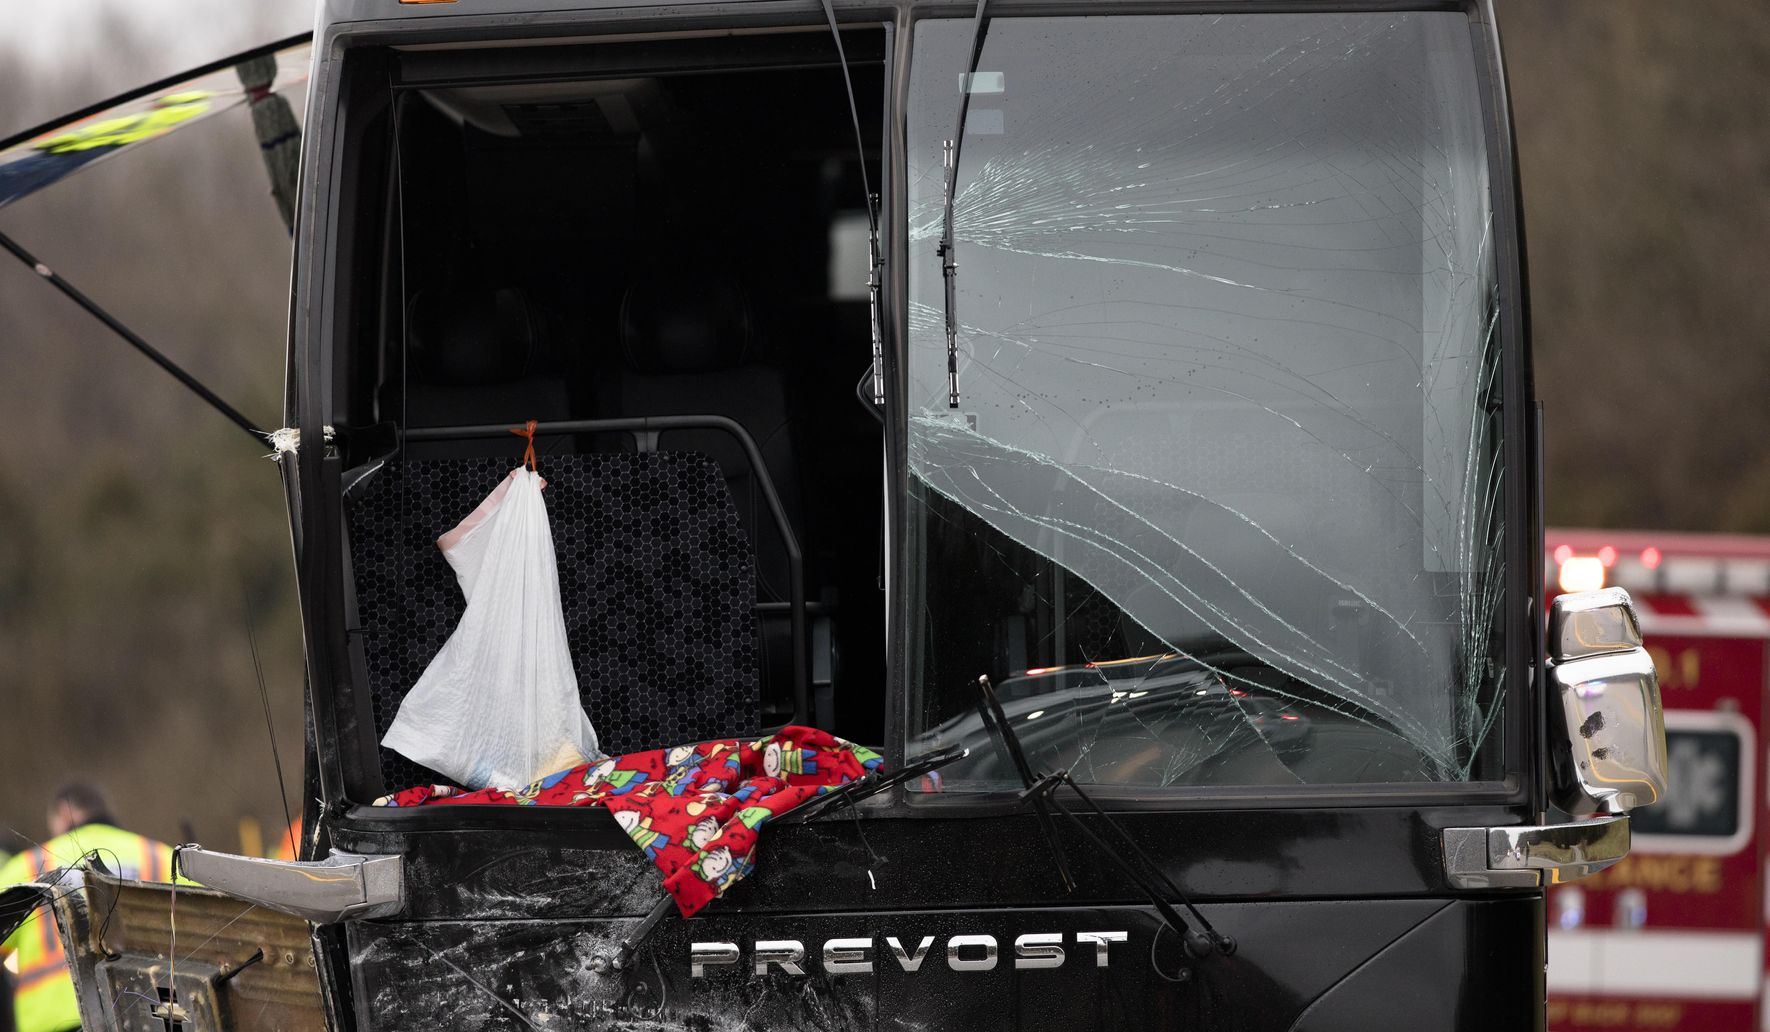 Driver killed in crash with Covington Catholic bus after March for Lif